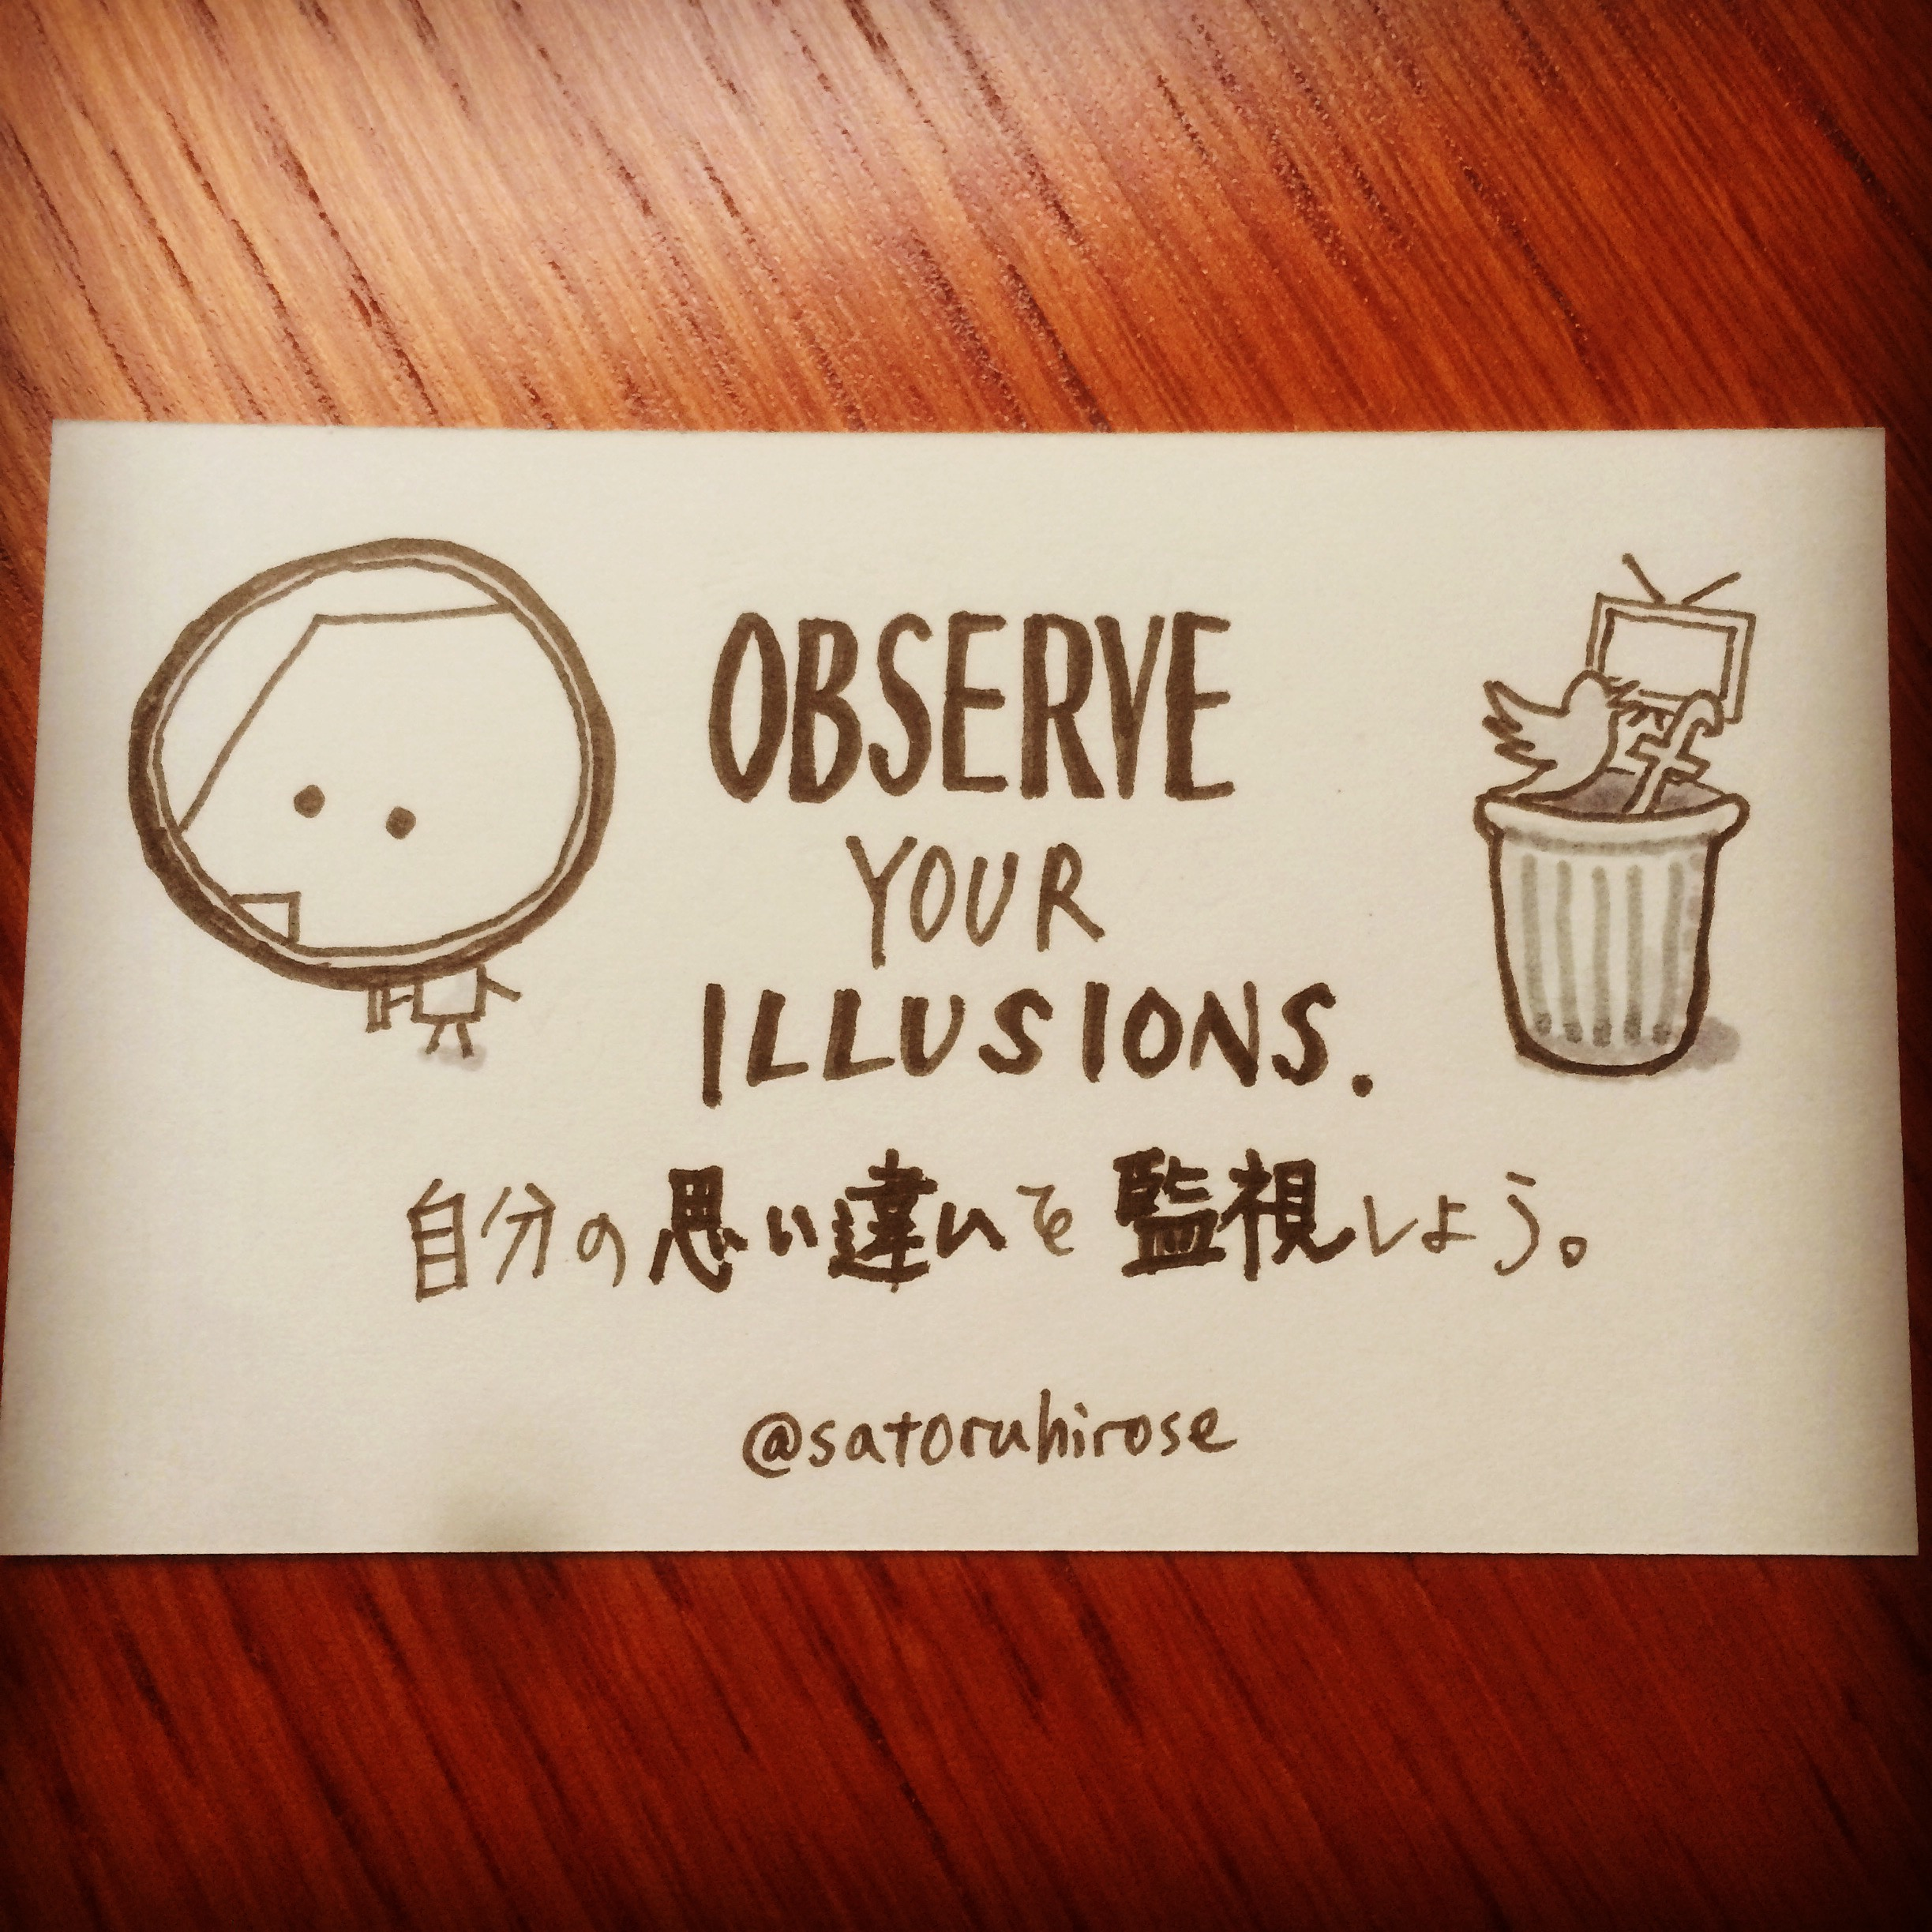 Observe your illusions.